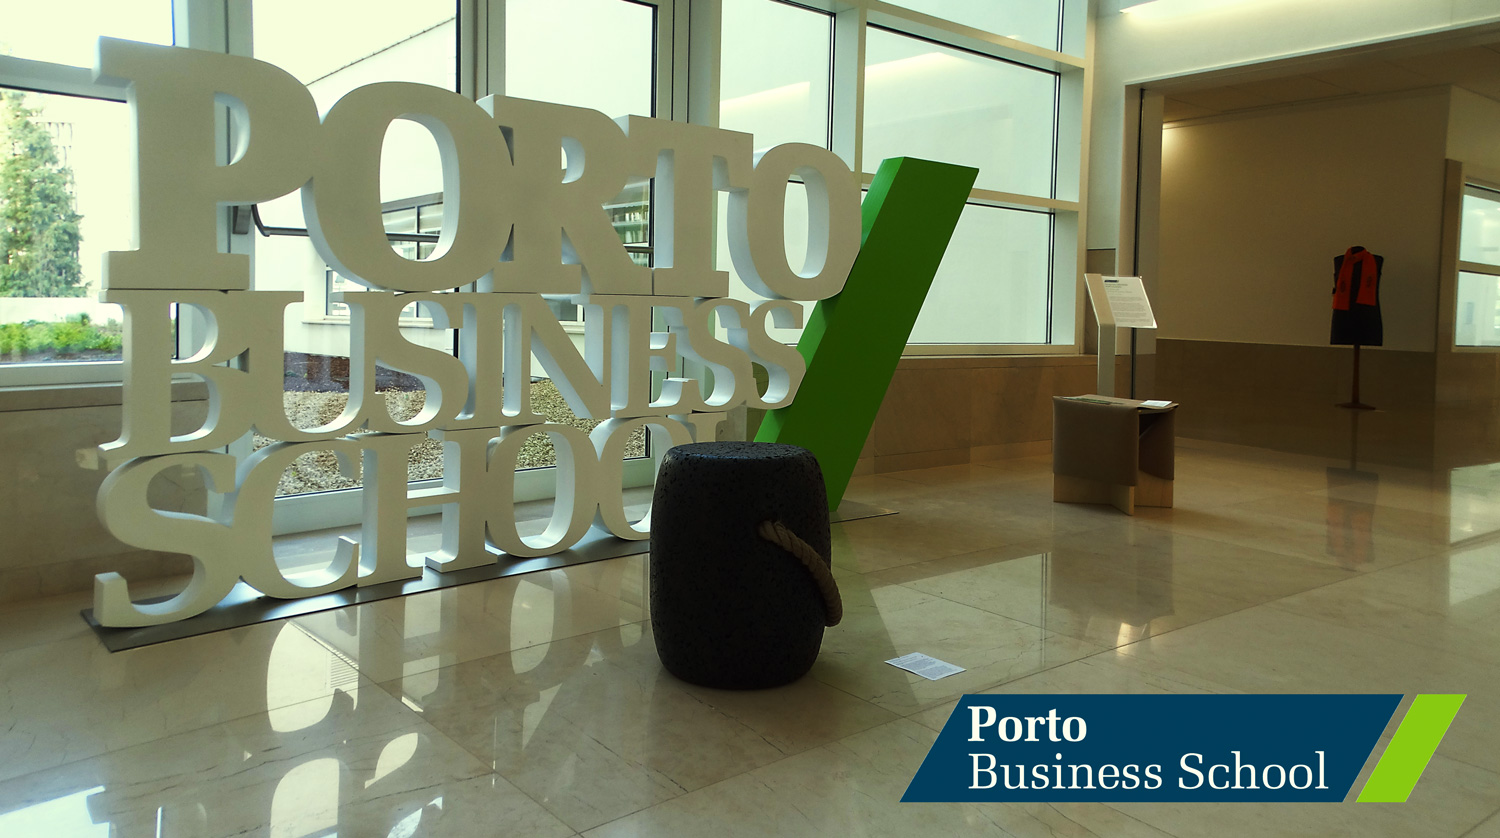 Porto Business School Exhibition 2014